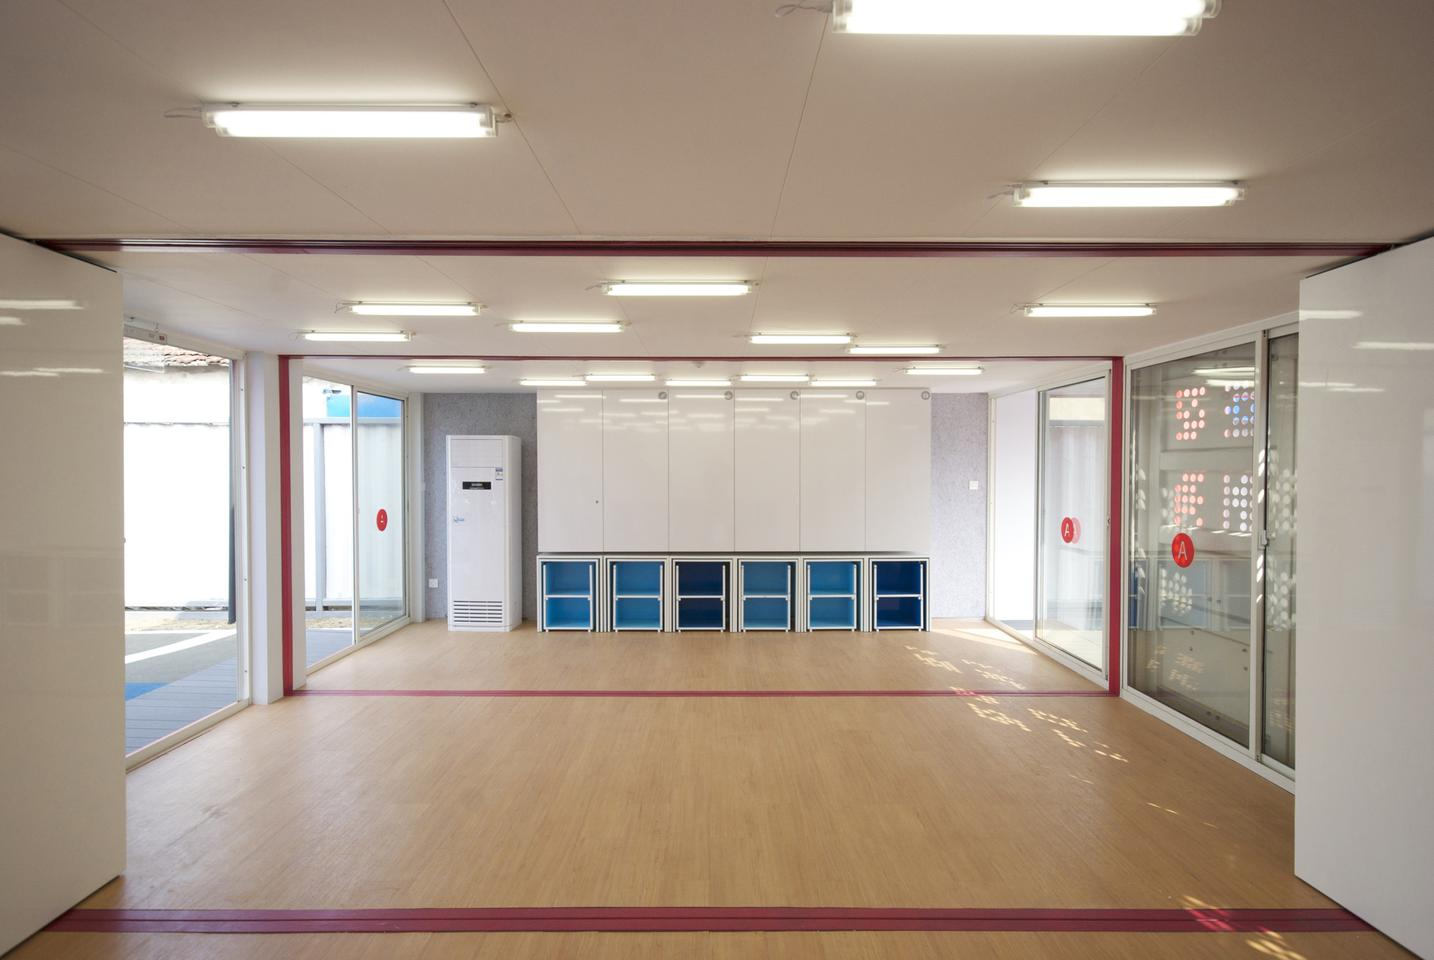 The community centre was completed in 2013 (Photo: Jennifer Ha)